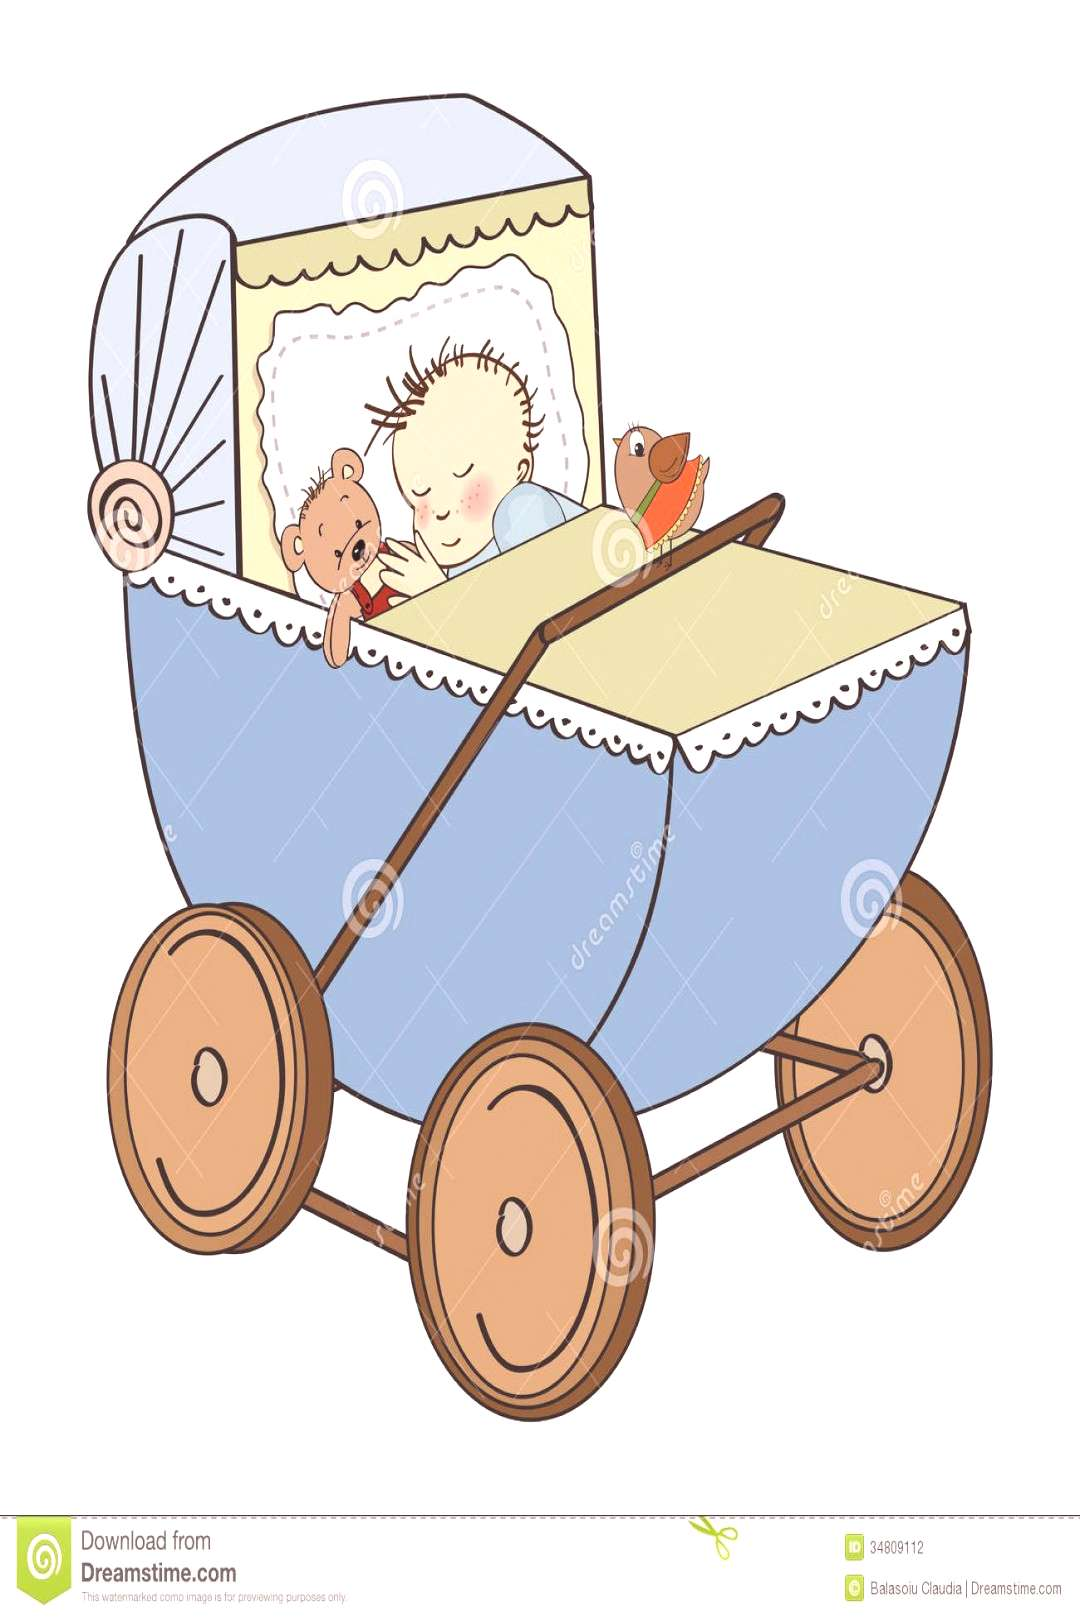 113 reference of stroller Retro white background stroller Retro white background-#stroller Please C